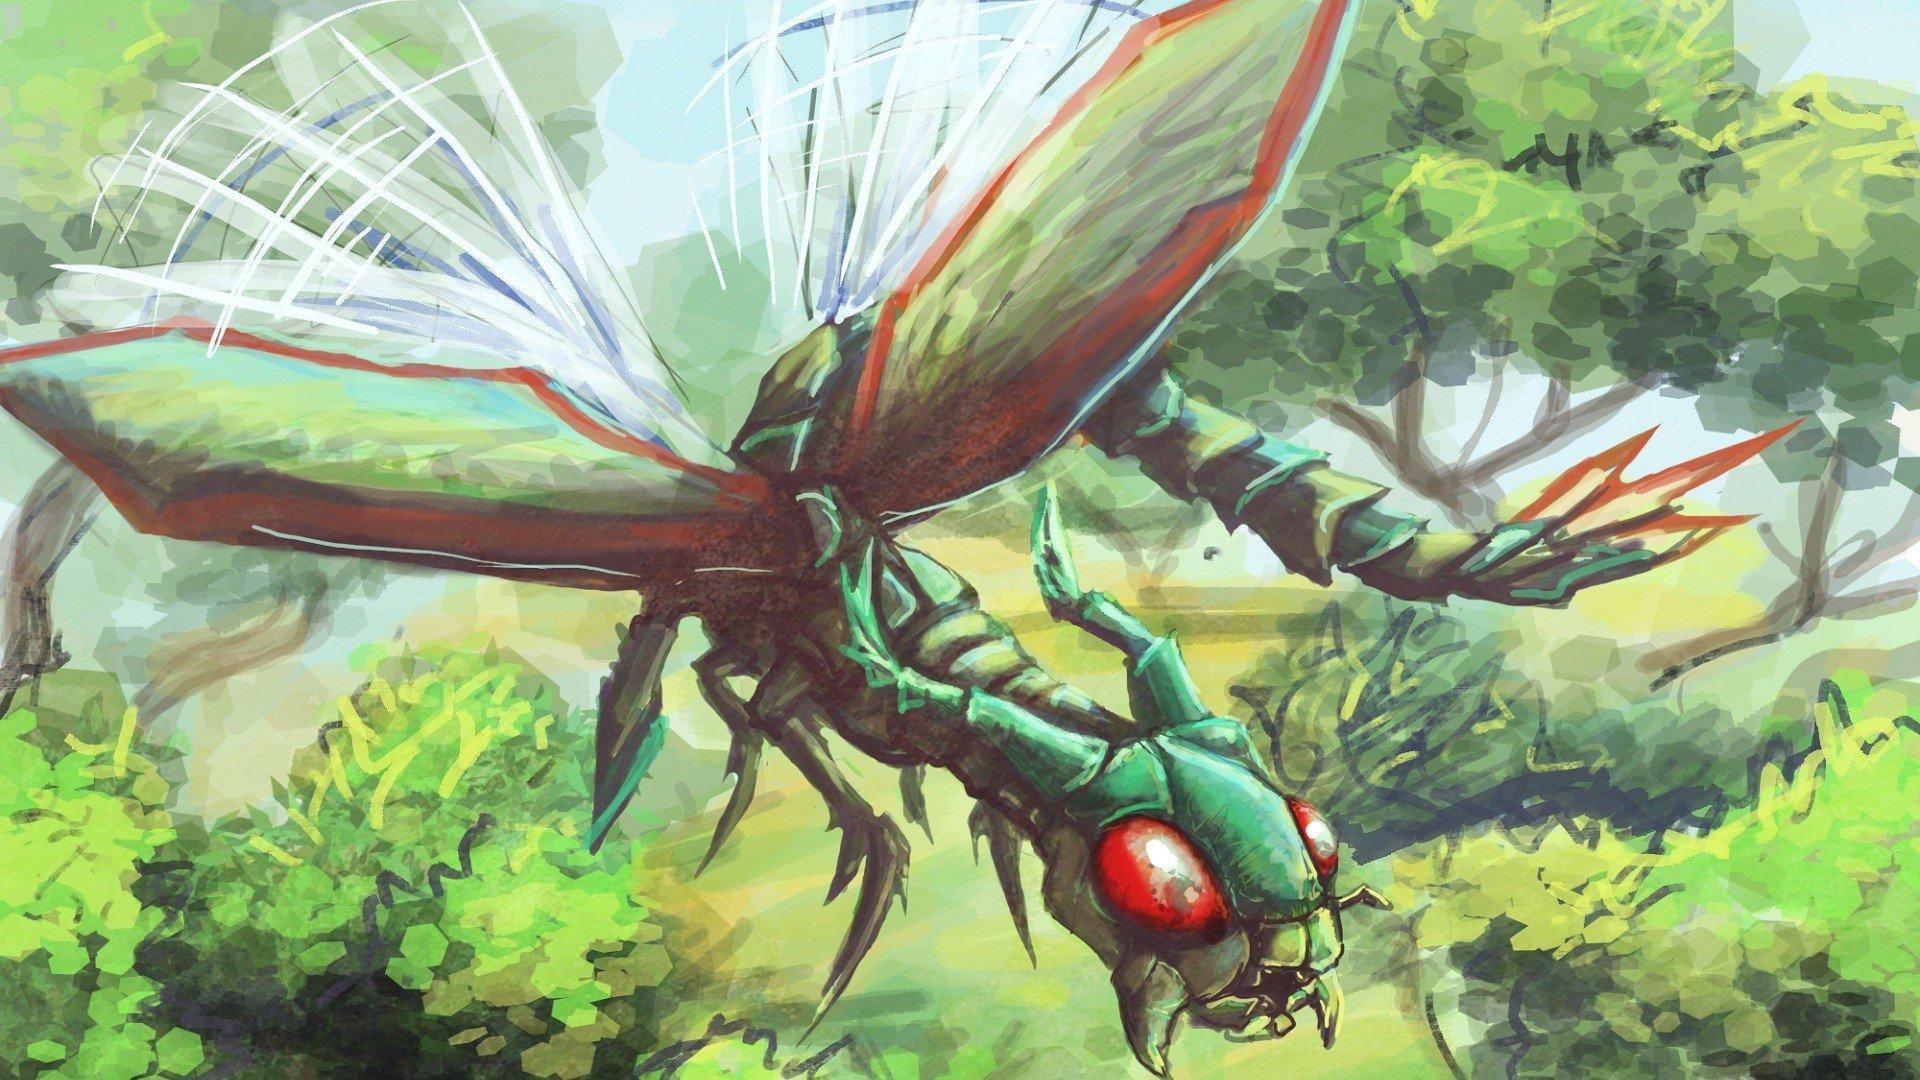 Nintendo Pokemon insects Flygon wallpaper 1920x1080 294308 1920x1080